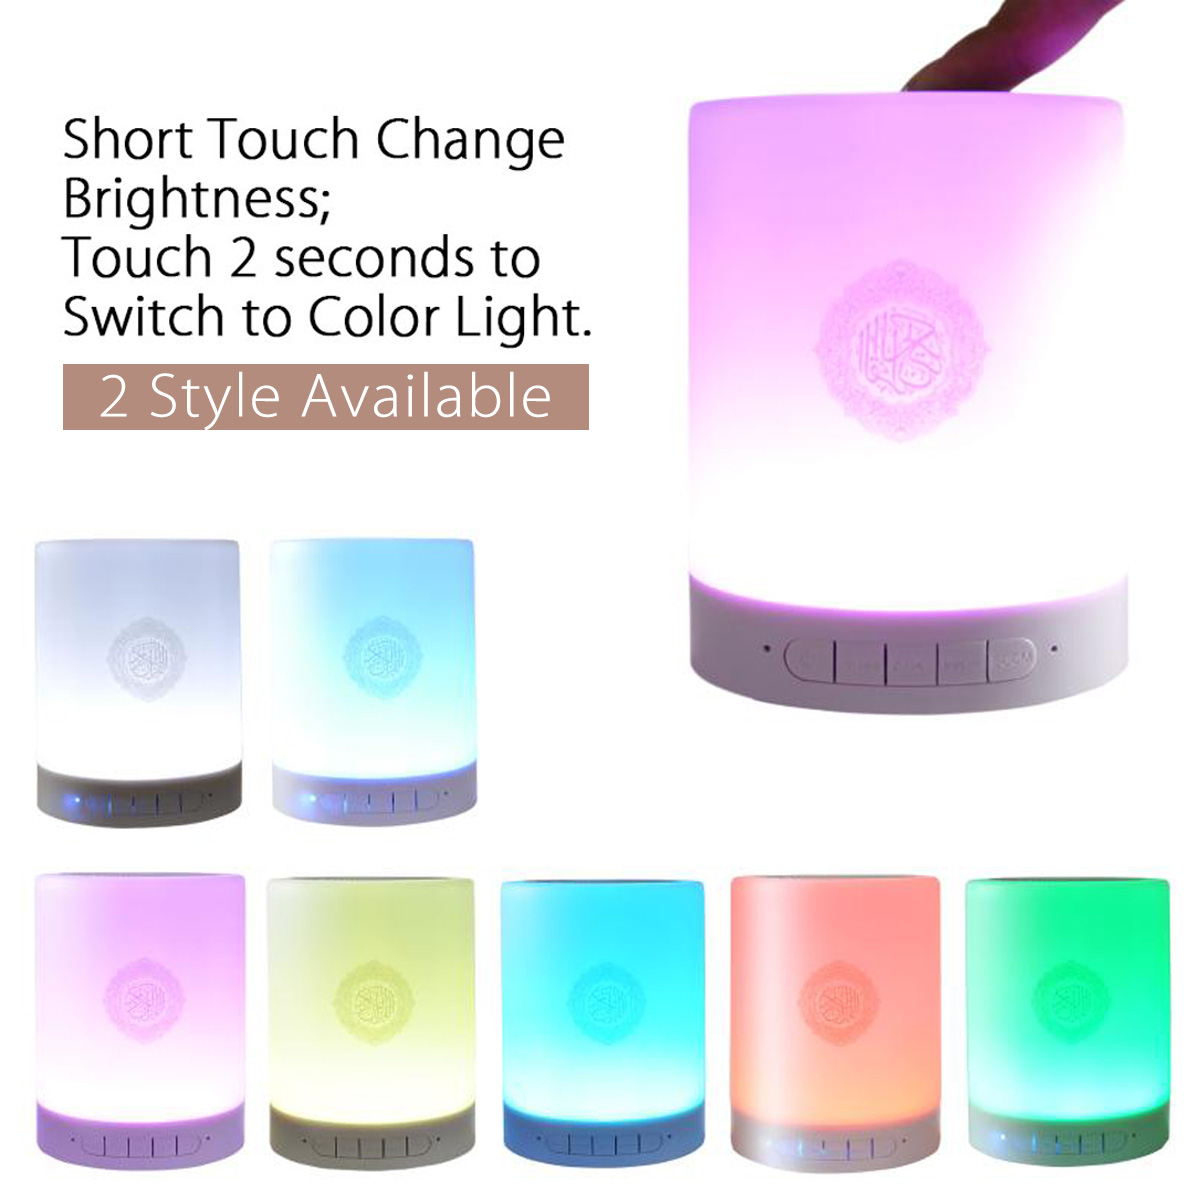 Wireless Remote Control Bluetooth Speaker Protable Quran Speakers MP3 FM Radio Touchs LED Lamp With 17 Languages